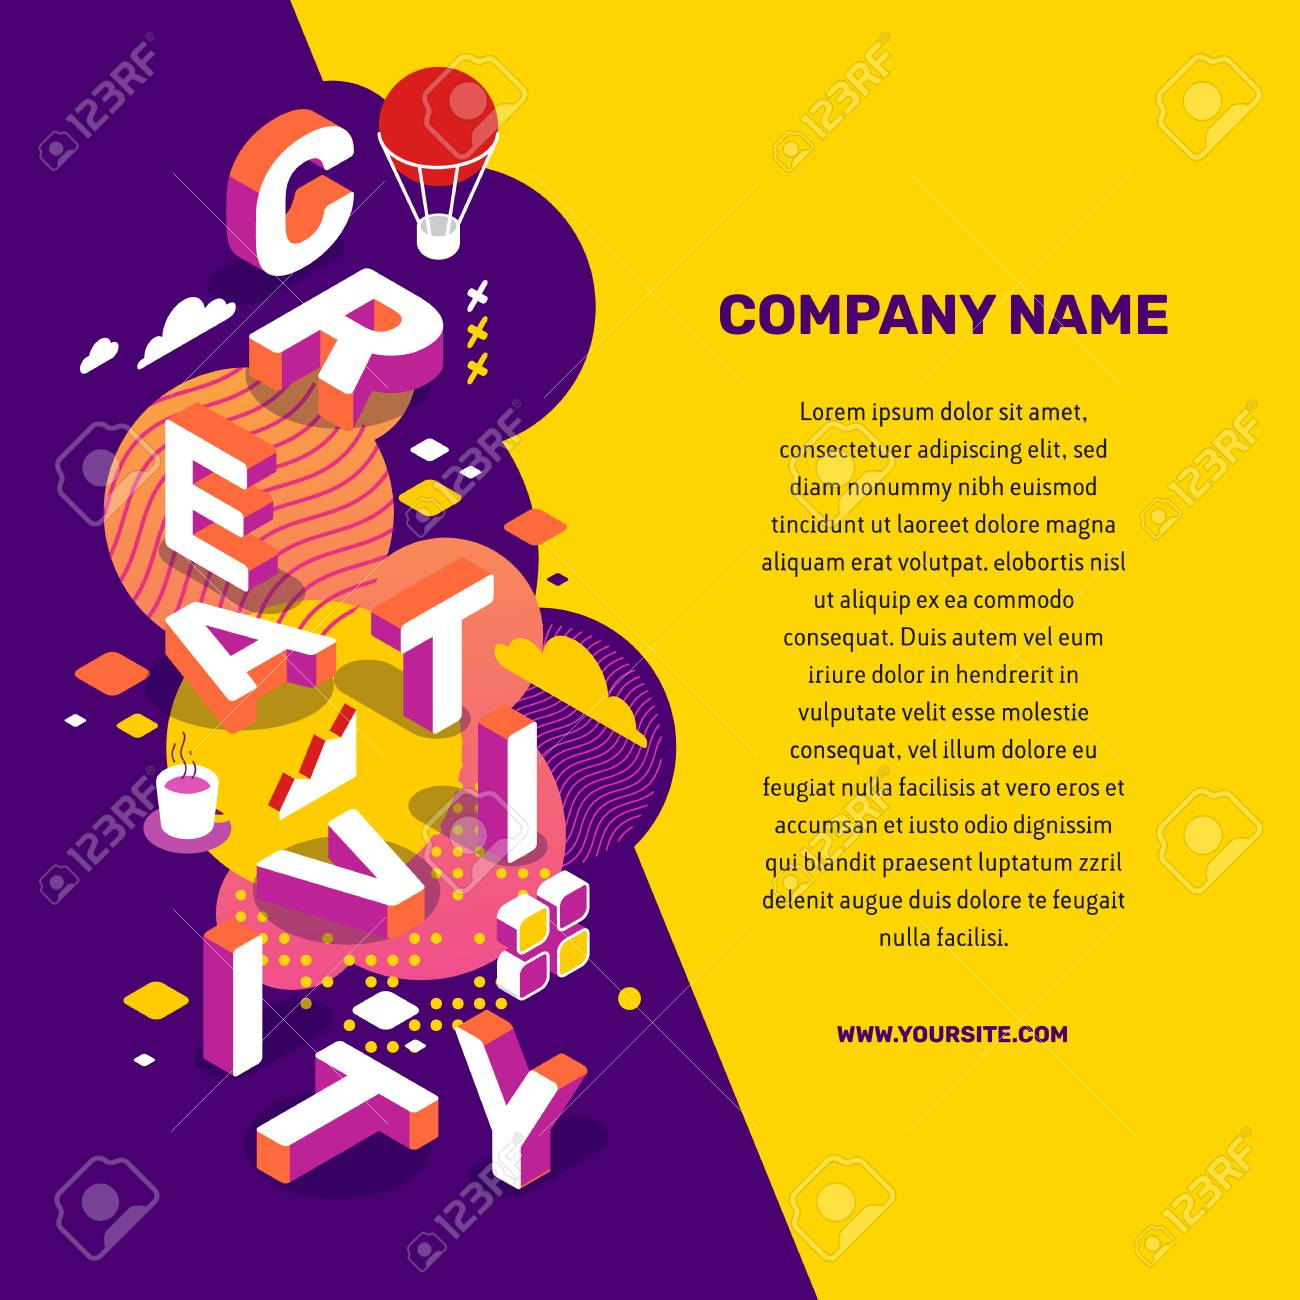 Vector creative illustration of 3d creativity word lettering typography with decor element, text on color background. Creative idea concept. Isometric design for business creative web, site, banner - 101679200